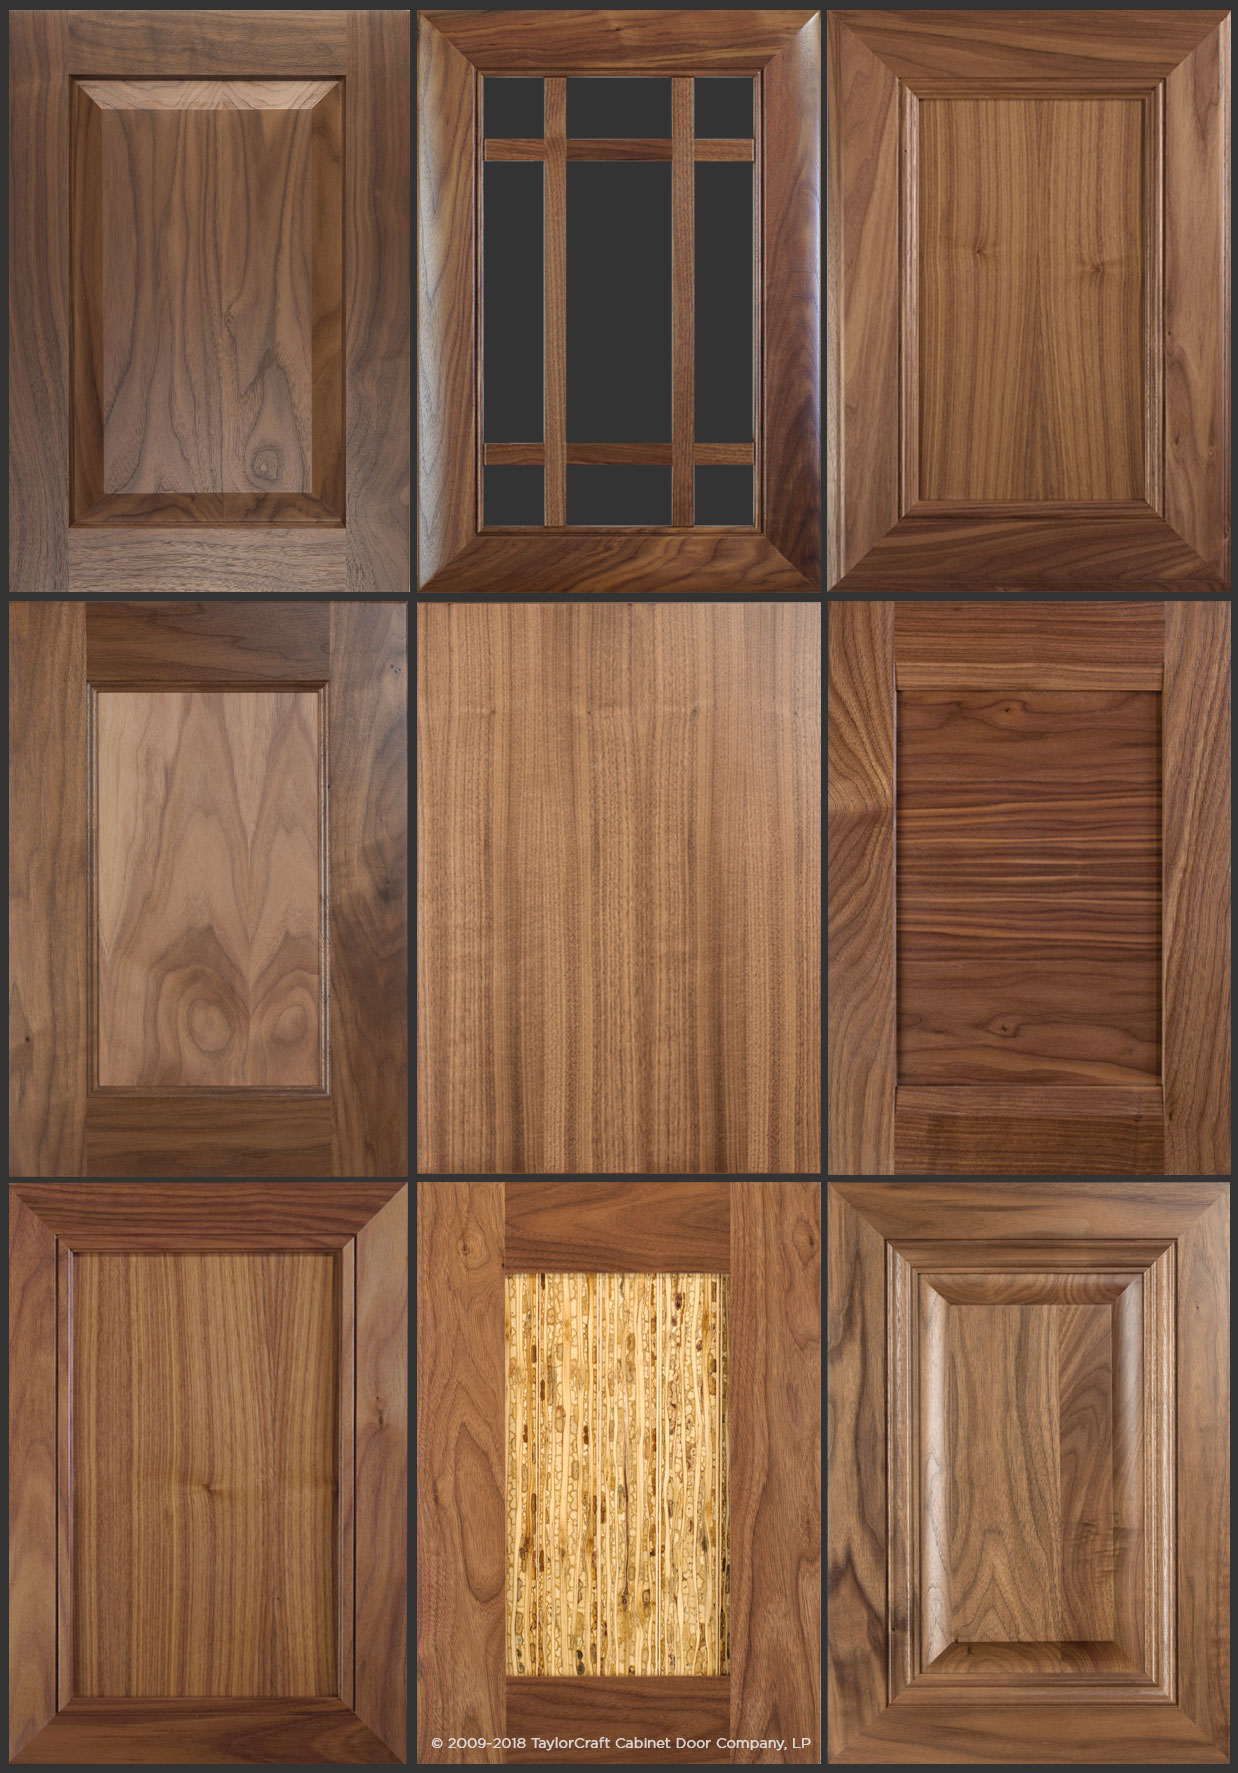 Walnut Cabinet Doors And Kitchen Cabinets Taylorcraft Cabinet Door Company